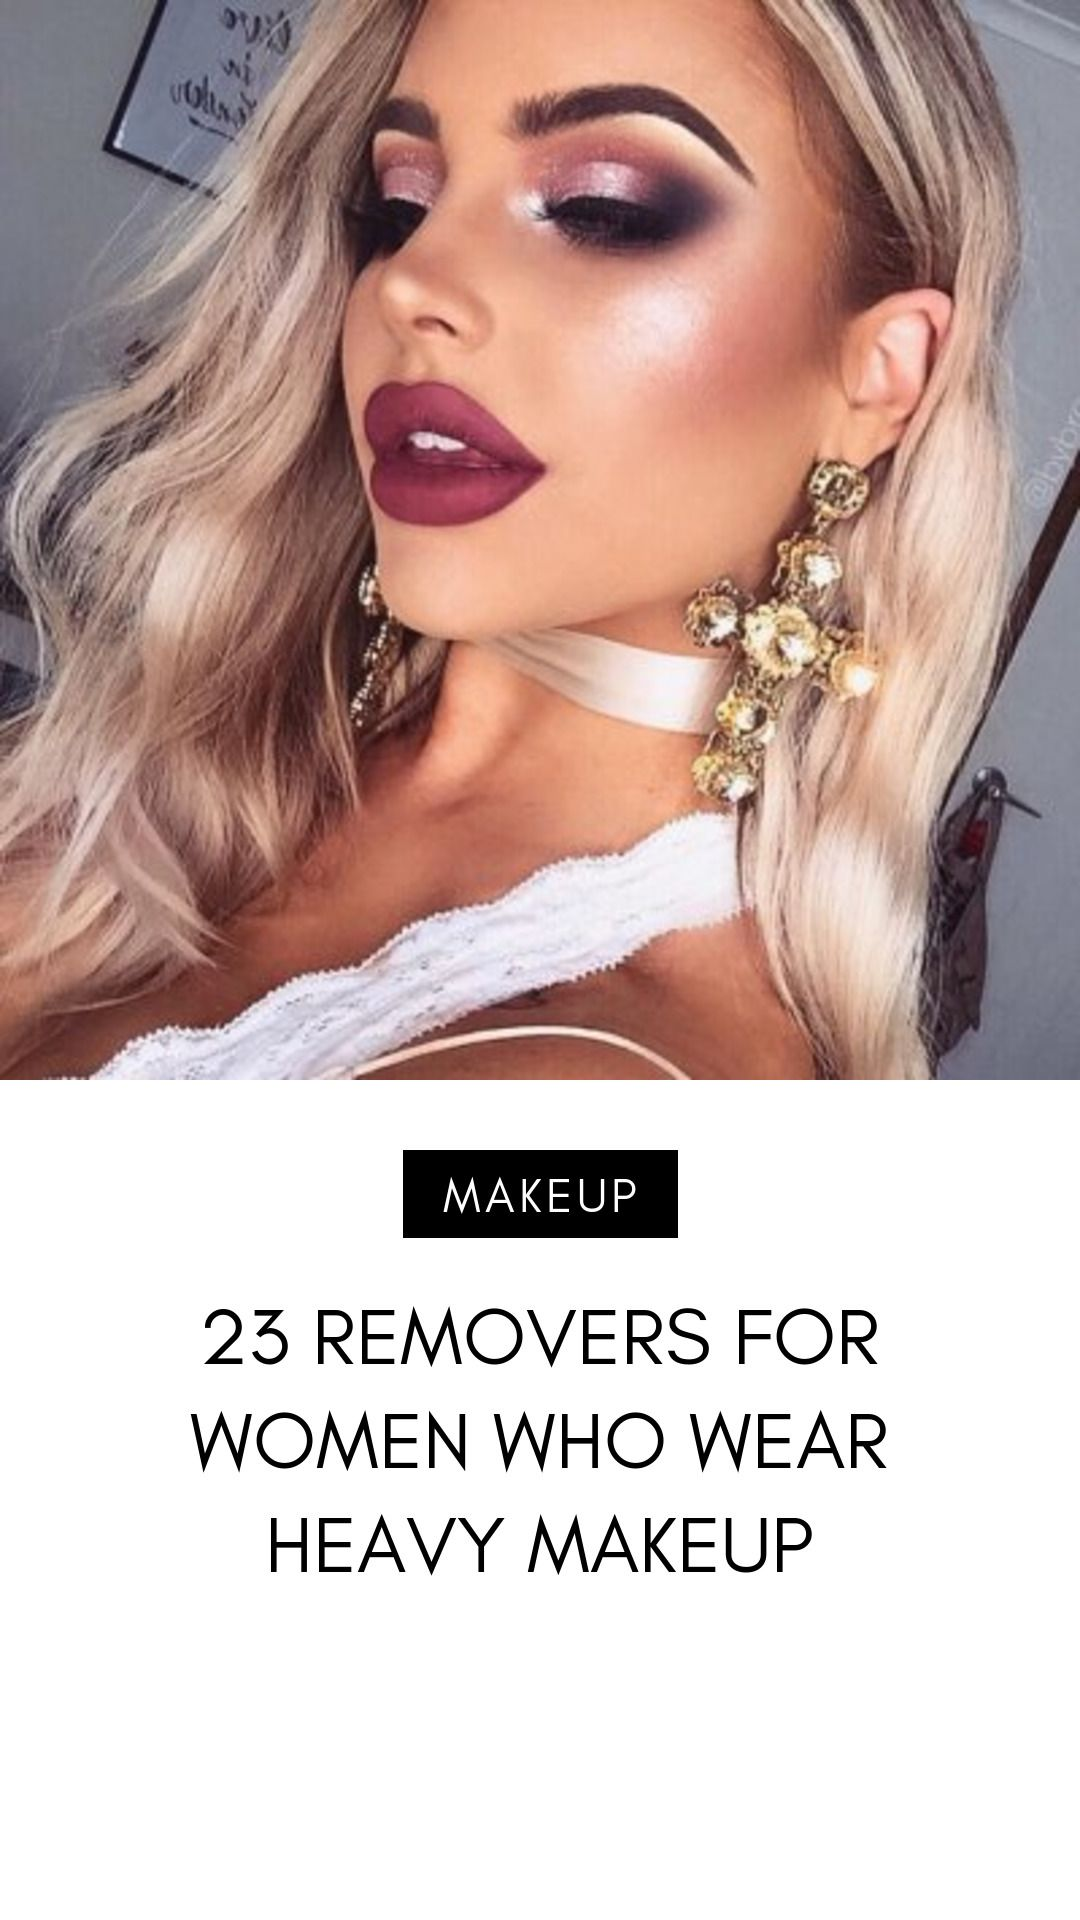 23 Removers for Women Who Wear Heavy Makeup in 2020